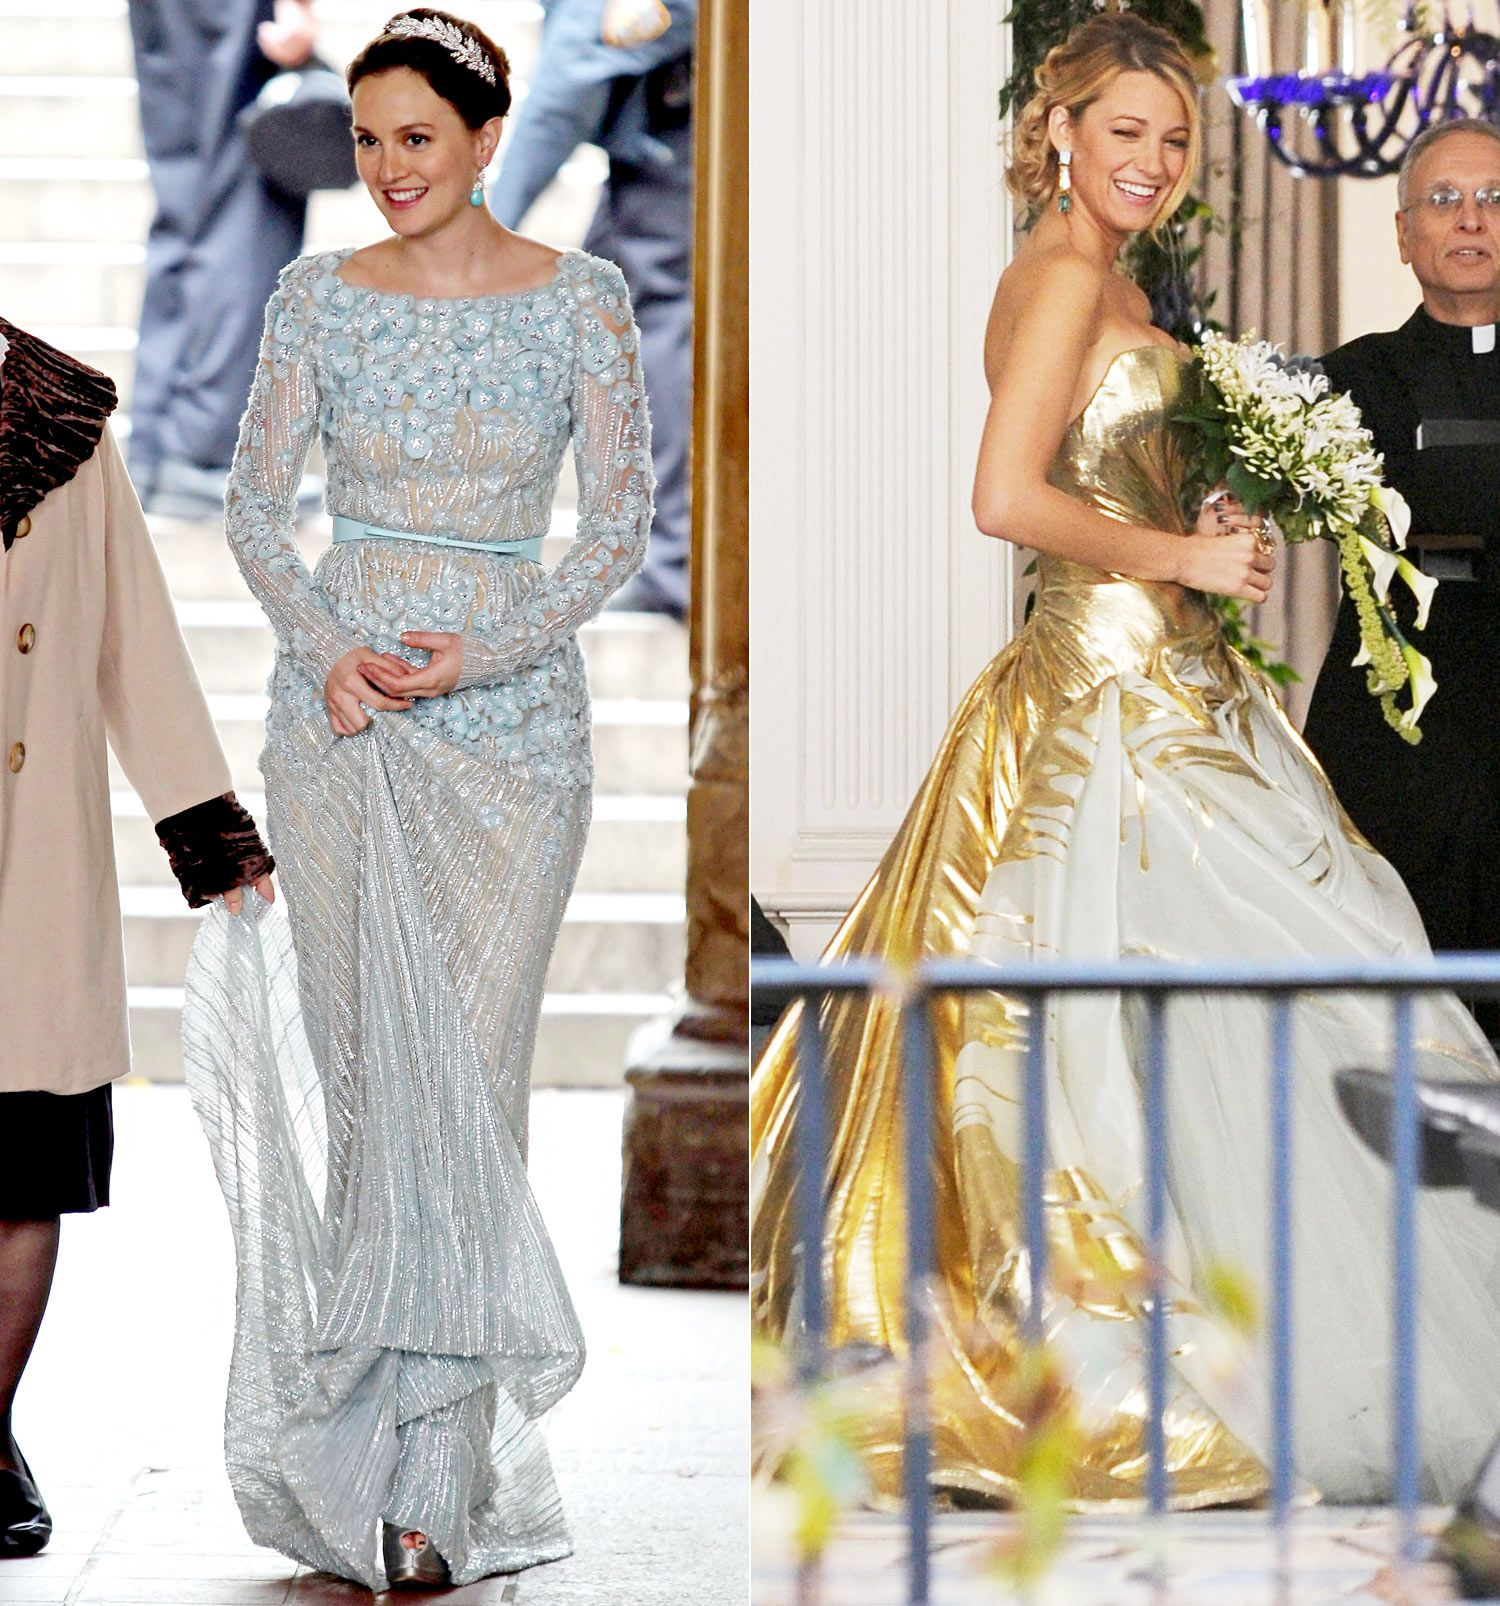 Gossip Girl Finale: Did Blair Waldorf or Serena van der Woodsen Have ...